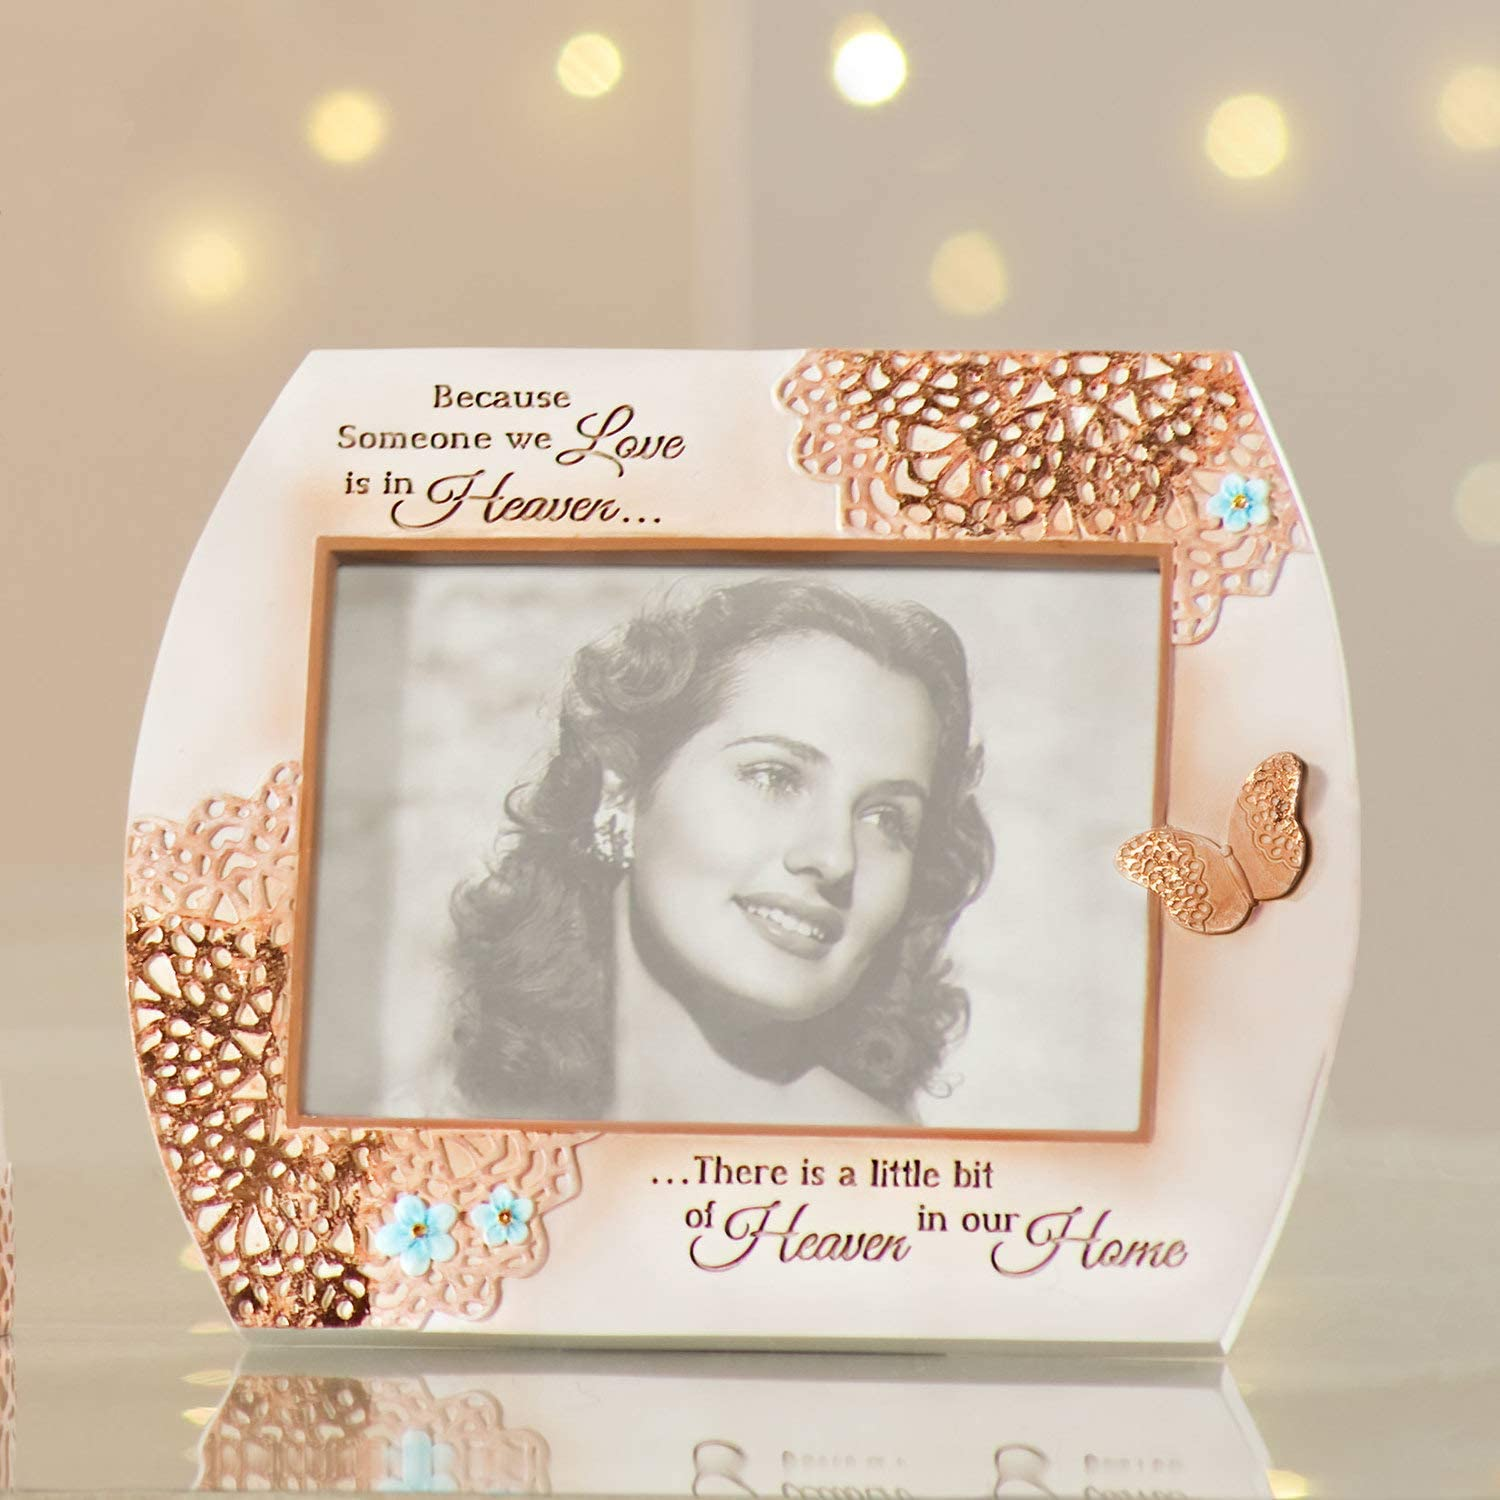 7.25x 6 Light Your Way 19050 Memorial Heaven in Our Home Photo Frame